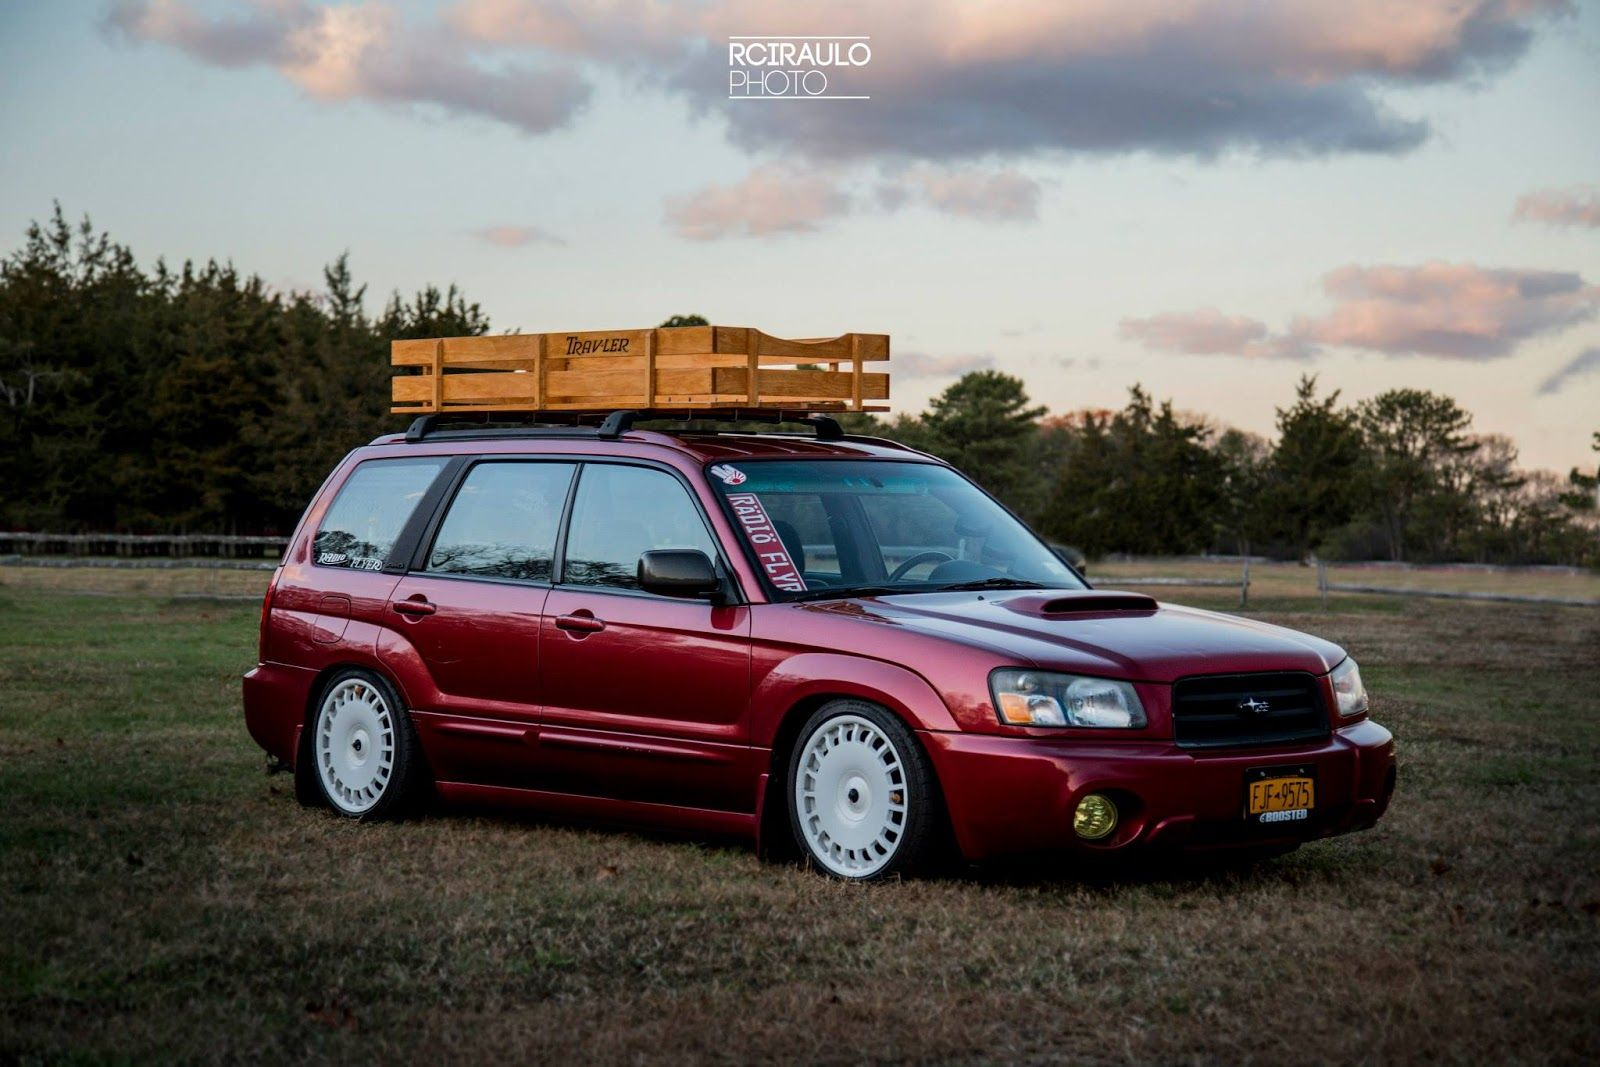 2007 Forester Xt For Sale Google 検索 Cars Subaru